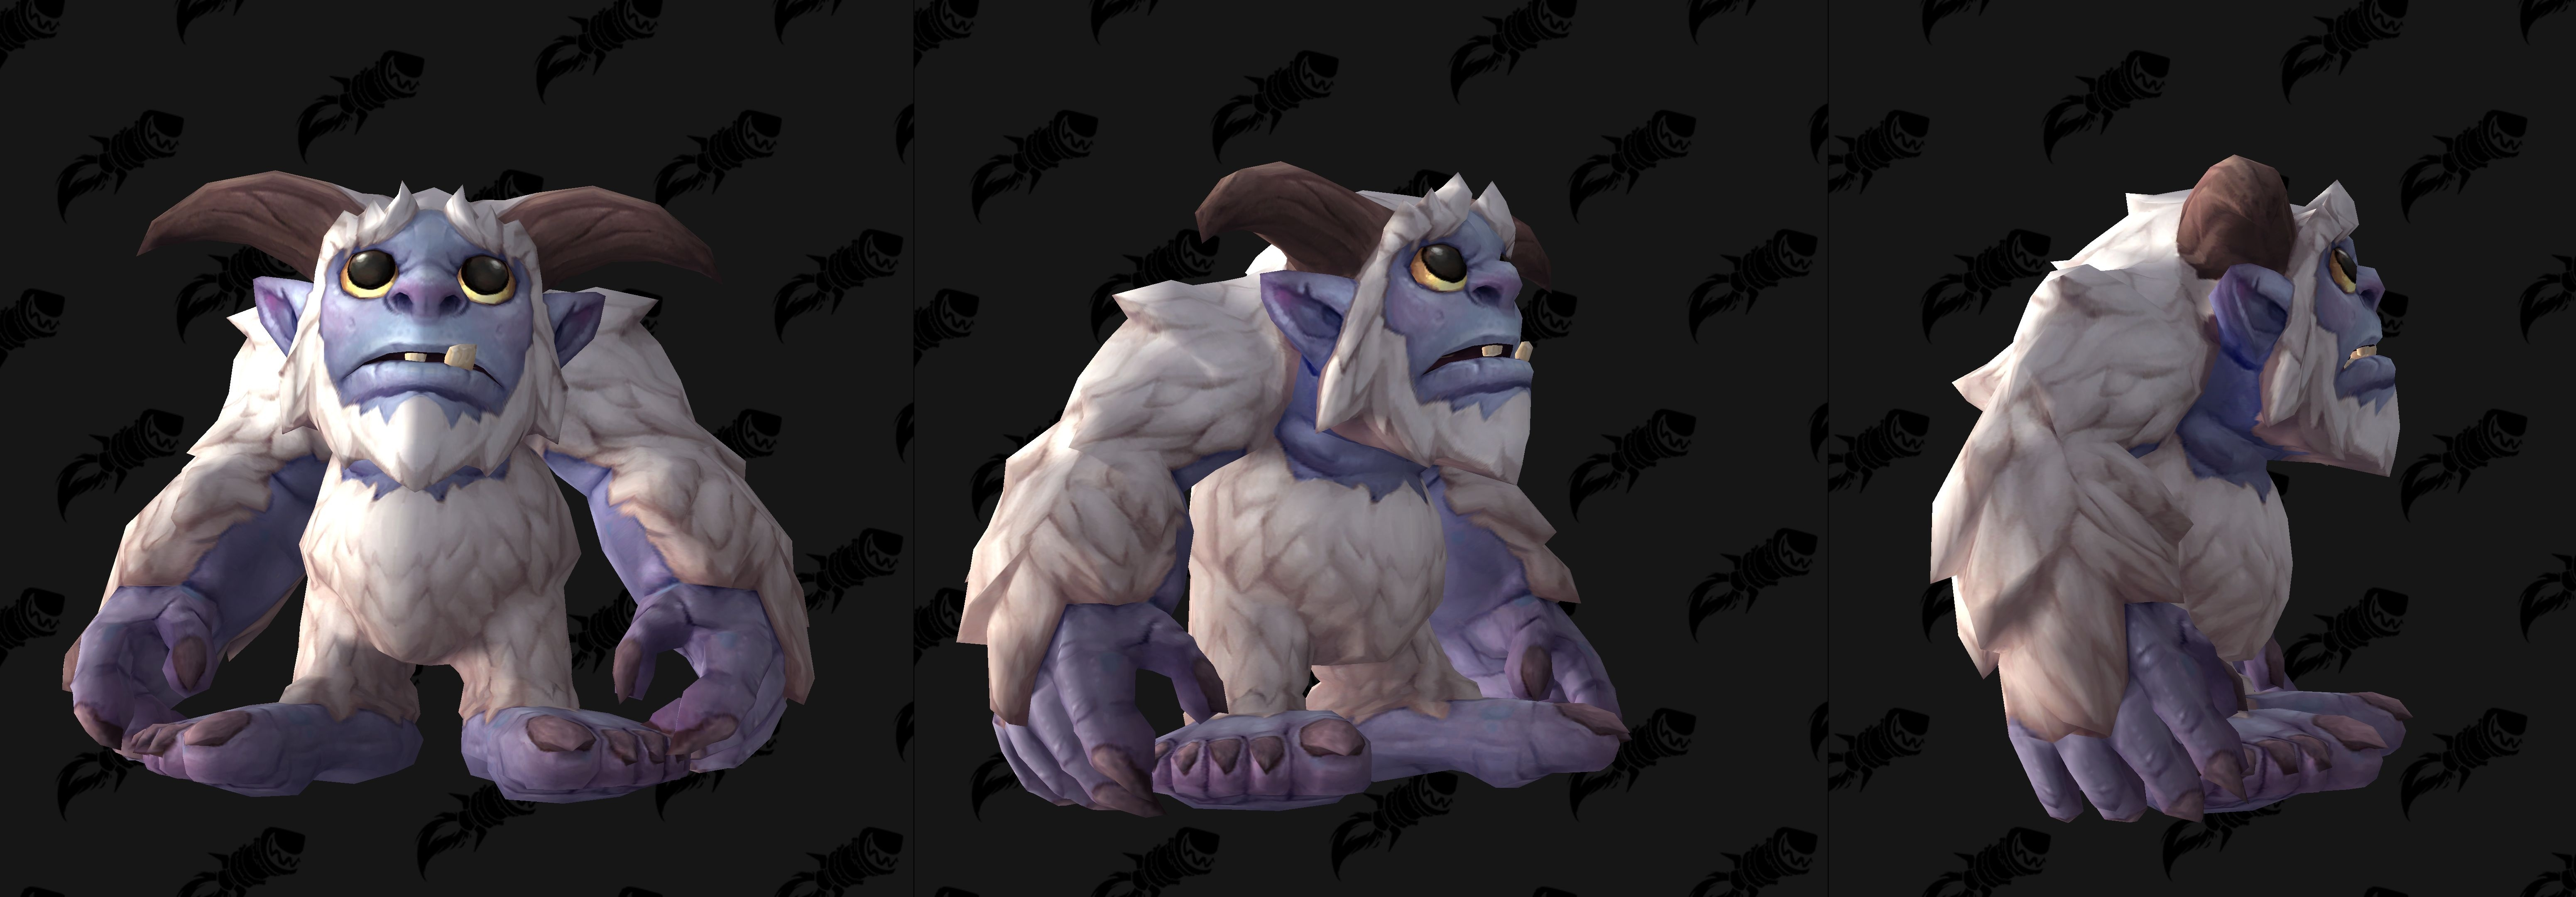 WoW Economy Weekly Wrap-Up: Blizzcon 2018, PTR 8 1 Builds, 5